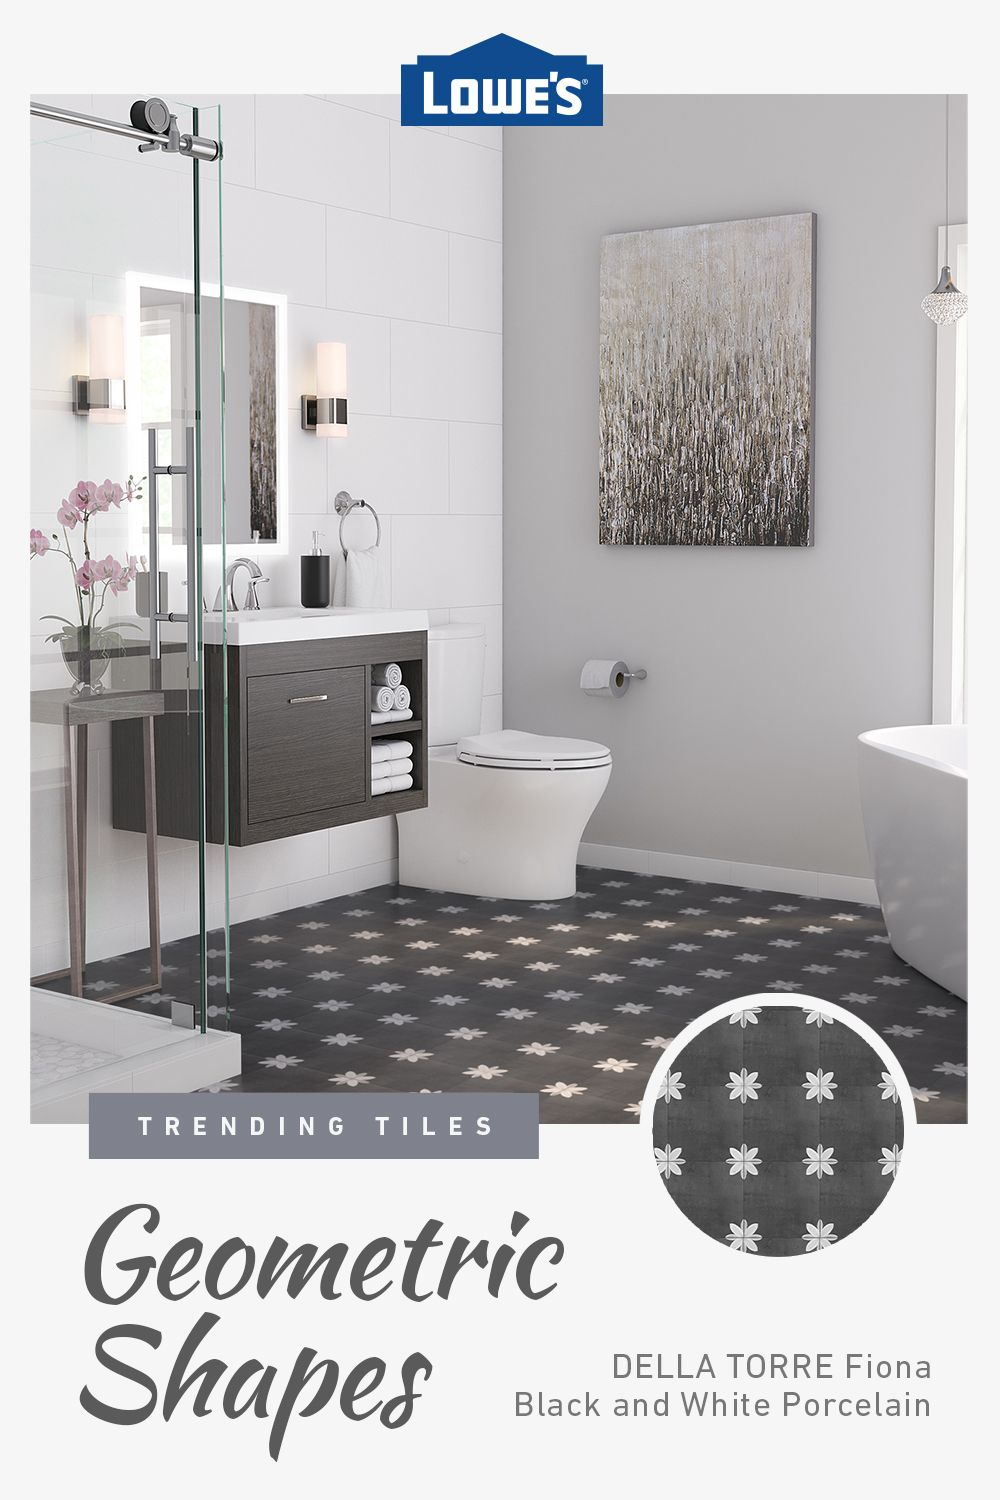 Top Tile Trends For Low Prices Bathroom Remodel Pictures Bathroom Inspiration Decor Bathroom Remodel Designs Top bathroom ceramic inspiration